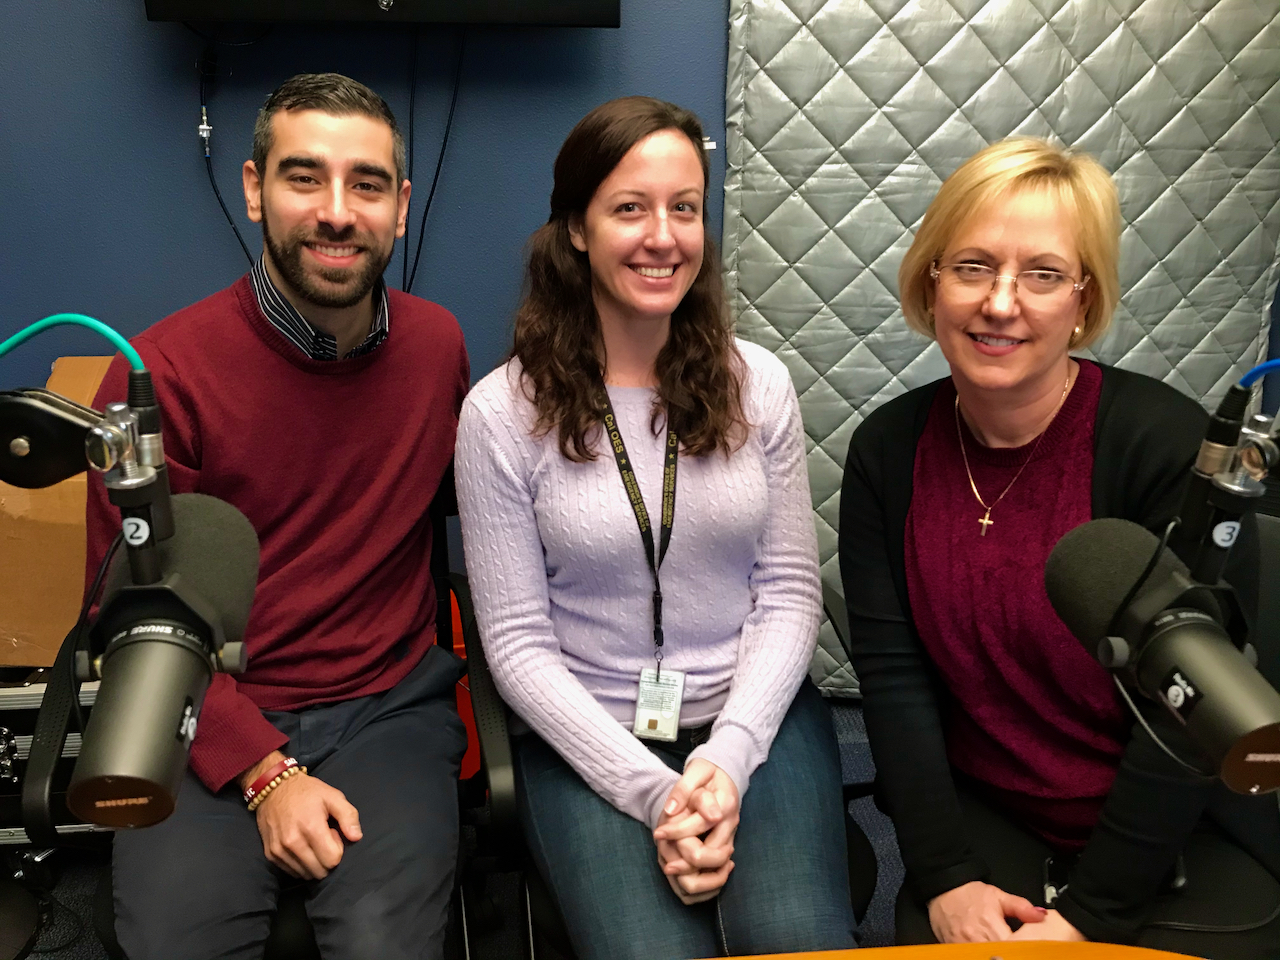 Podcast #74: Legislative and External Affairs and Their Own Challenges During Emergencies